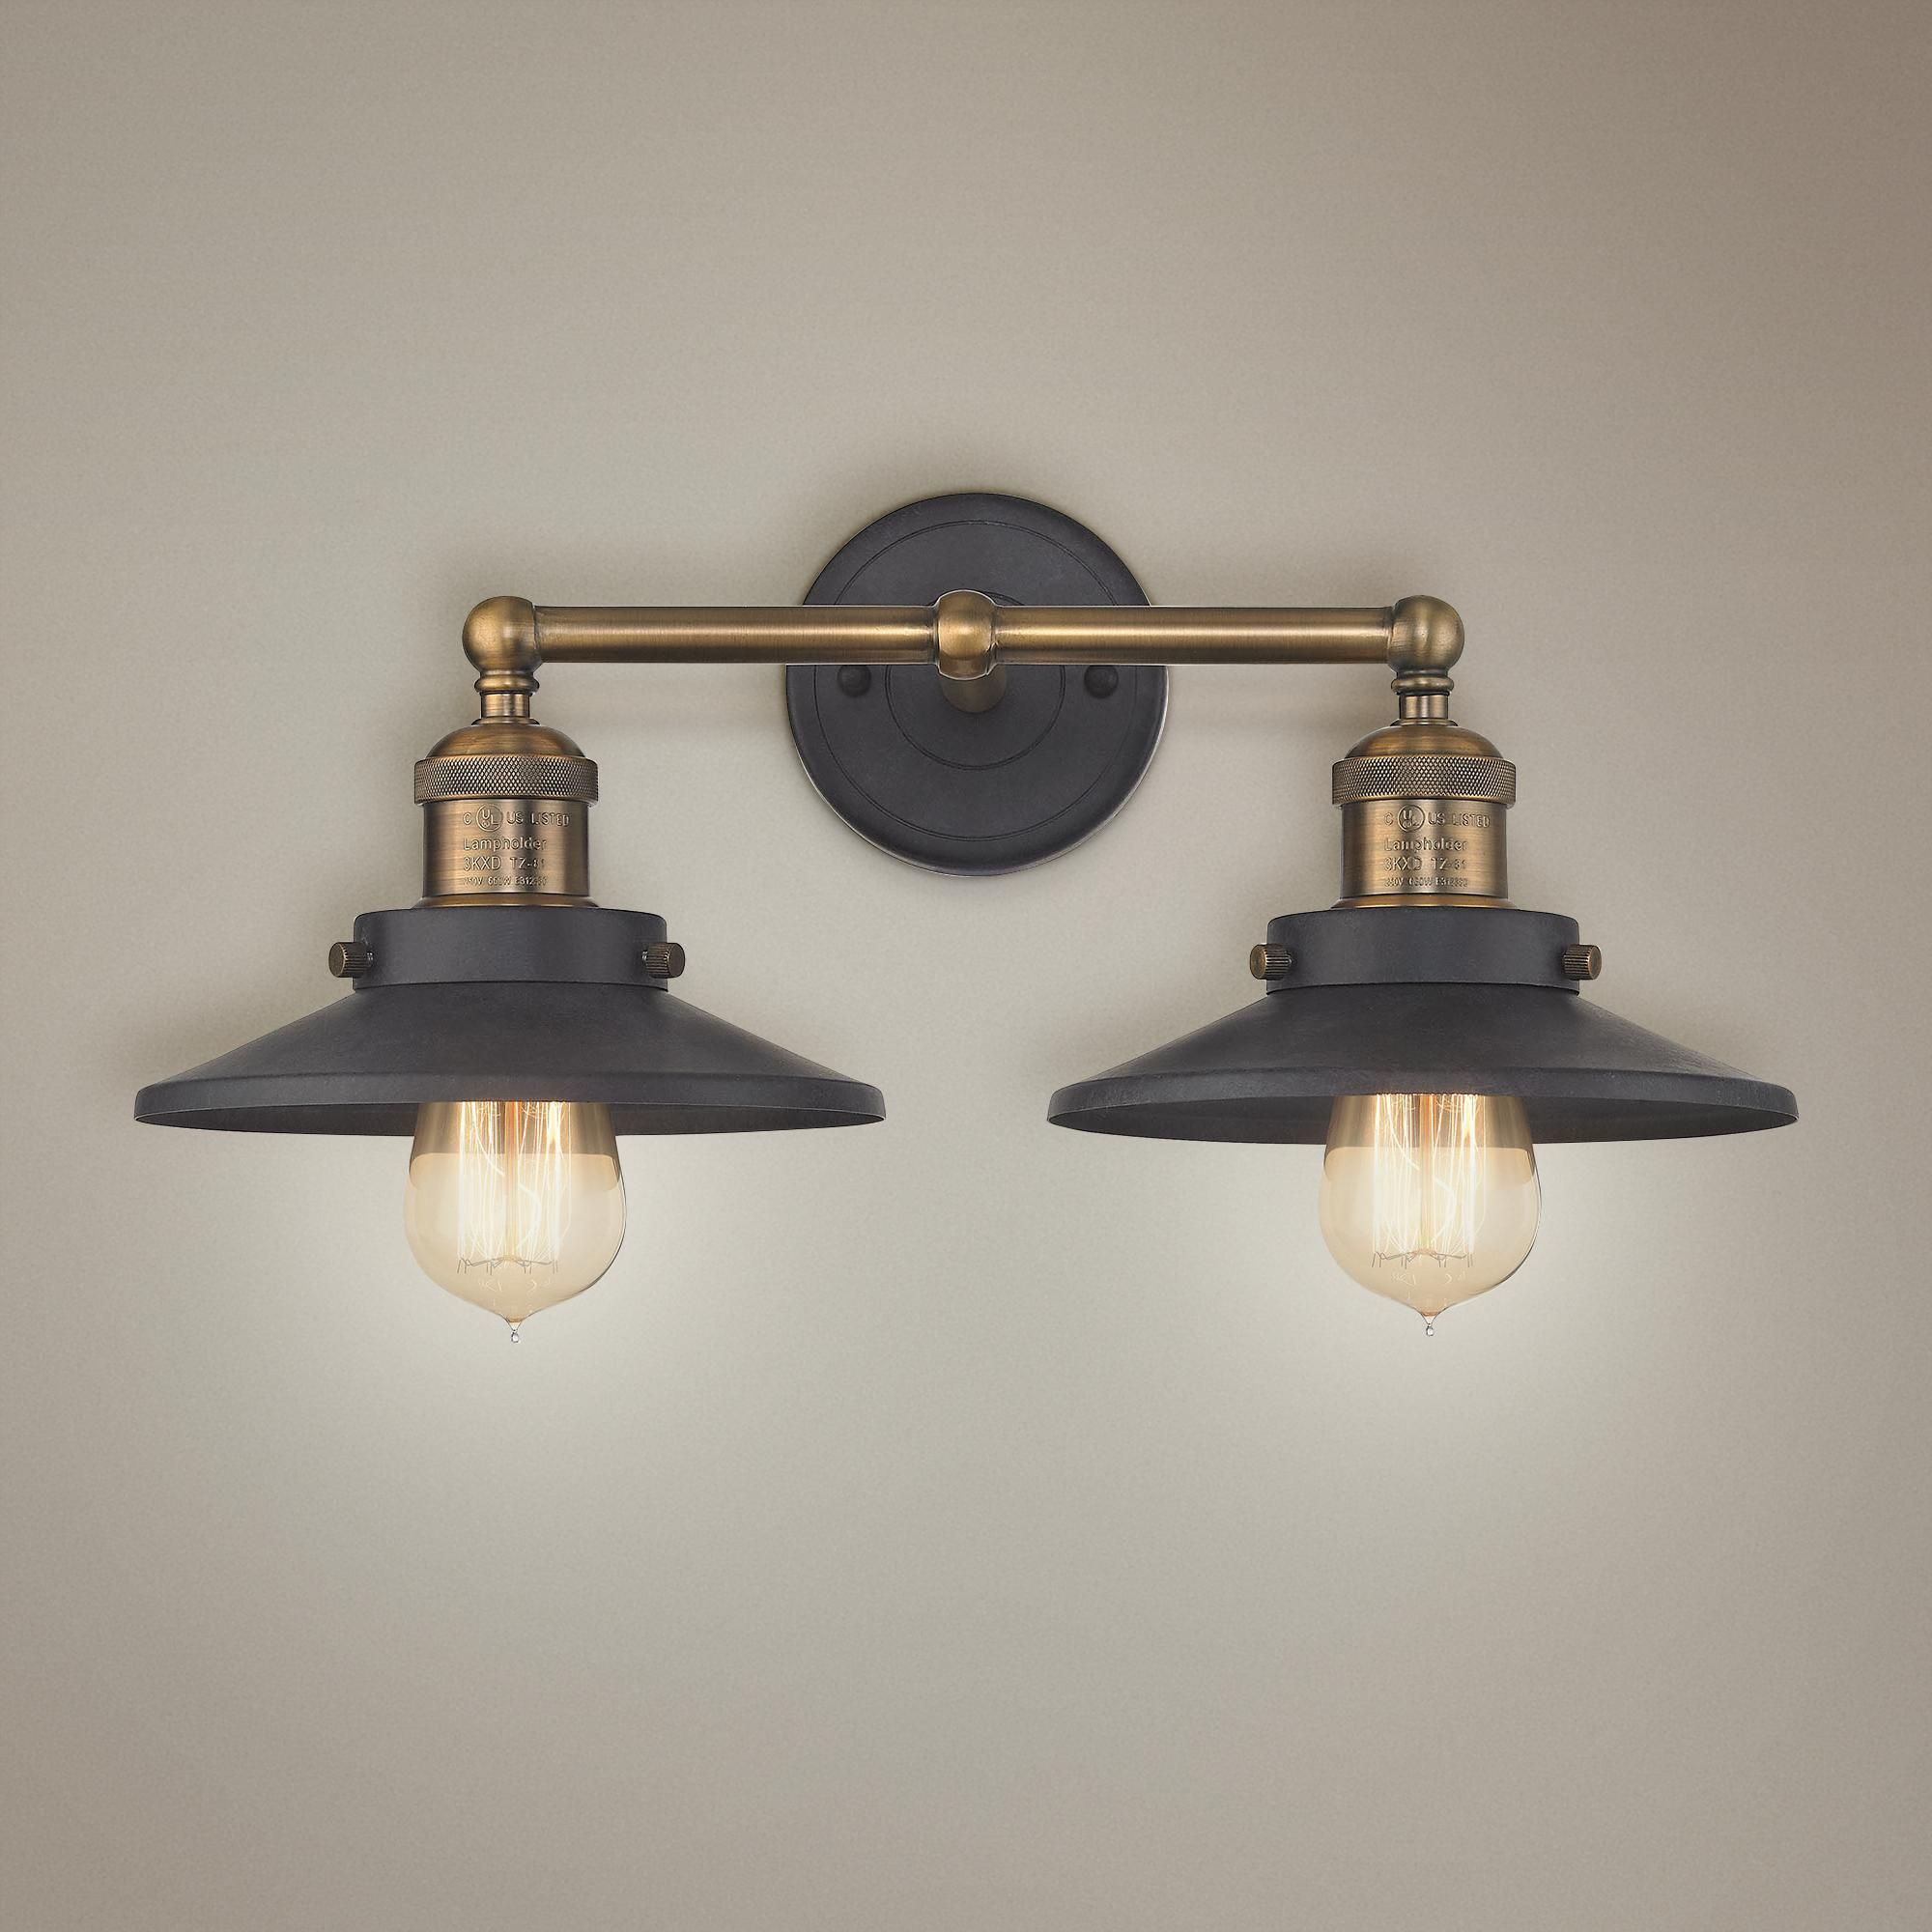 Photo of English Pub 18 Inchw Brass And Tarnished Graphite Bath Light